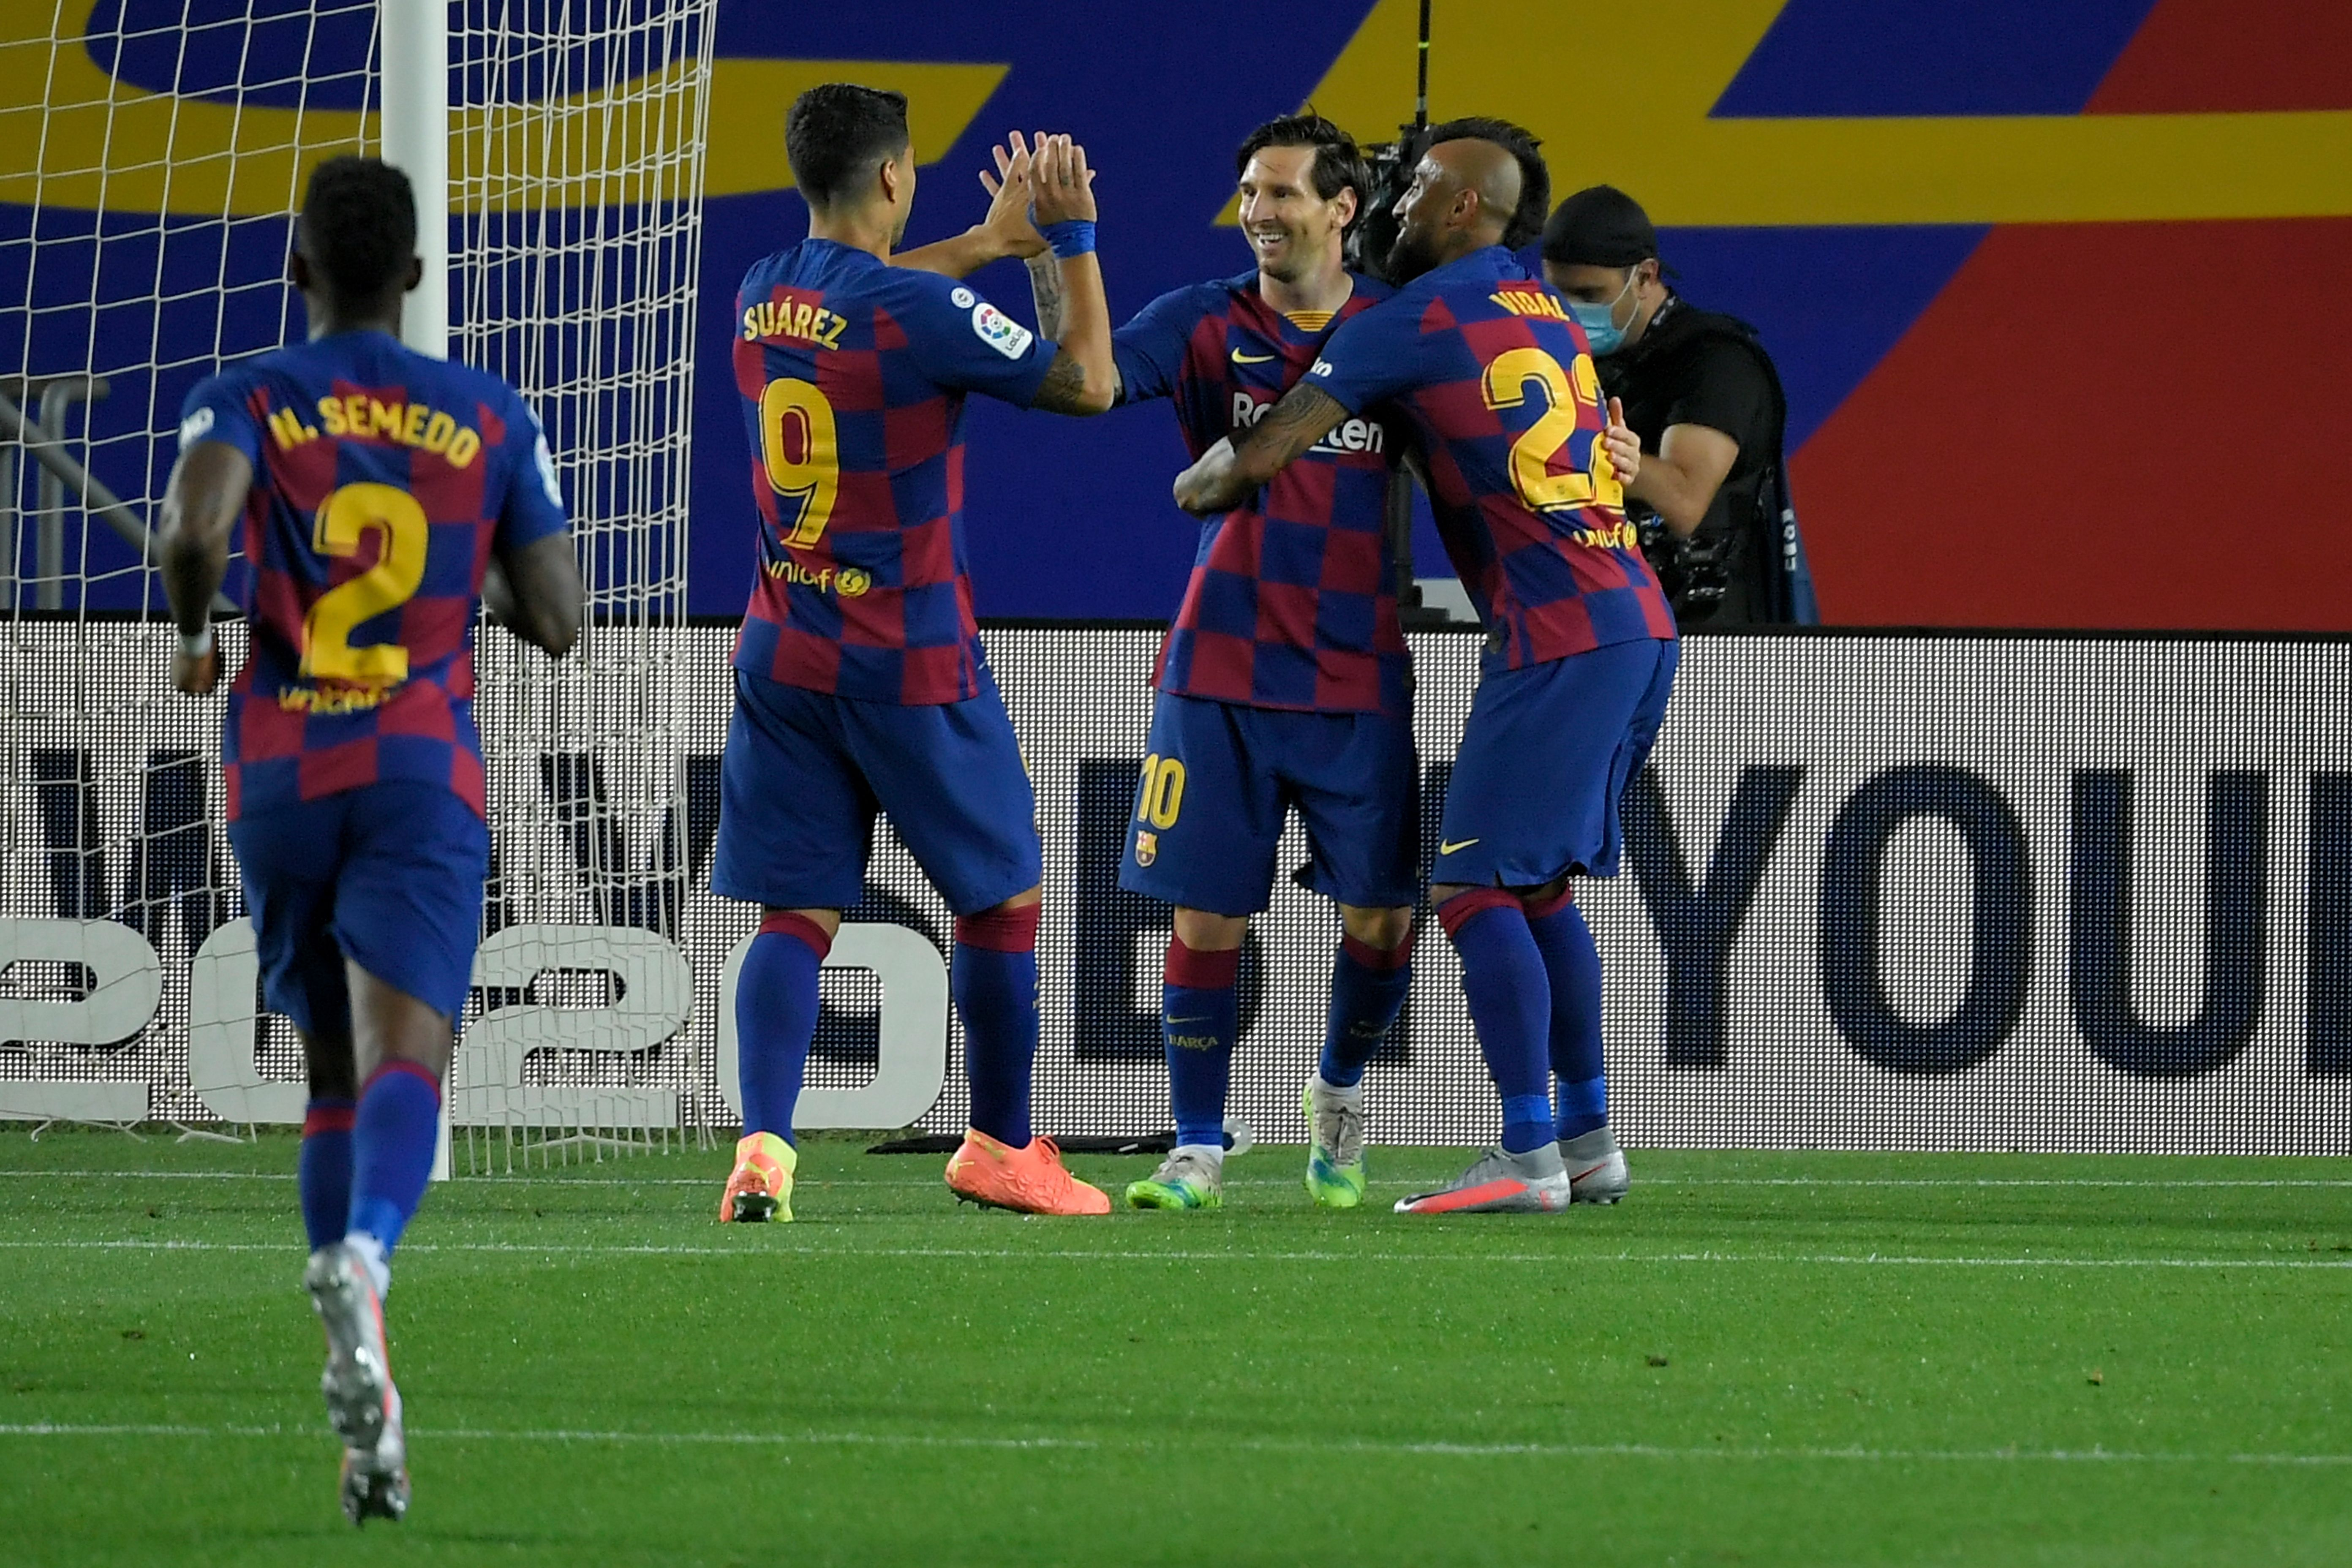 Barcelona Vs Sevilla On Bein Sports Time Tv Channel Odds How To Watch Free Live Stream Online 6 19 2020 Oregonlive Com